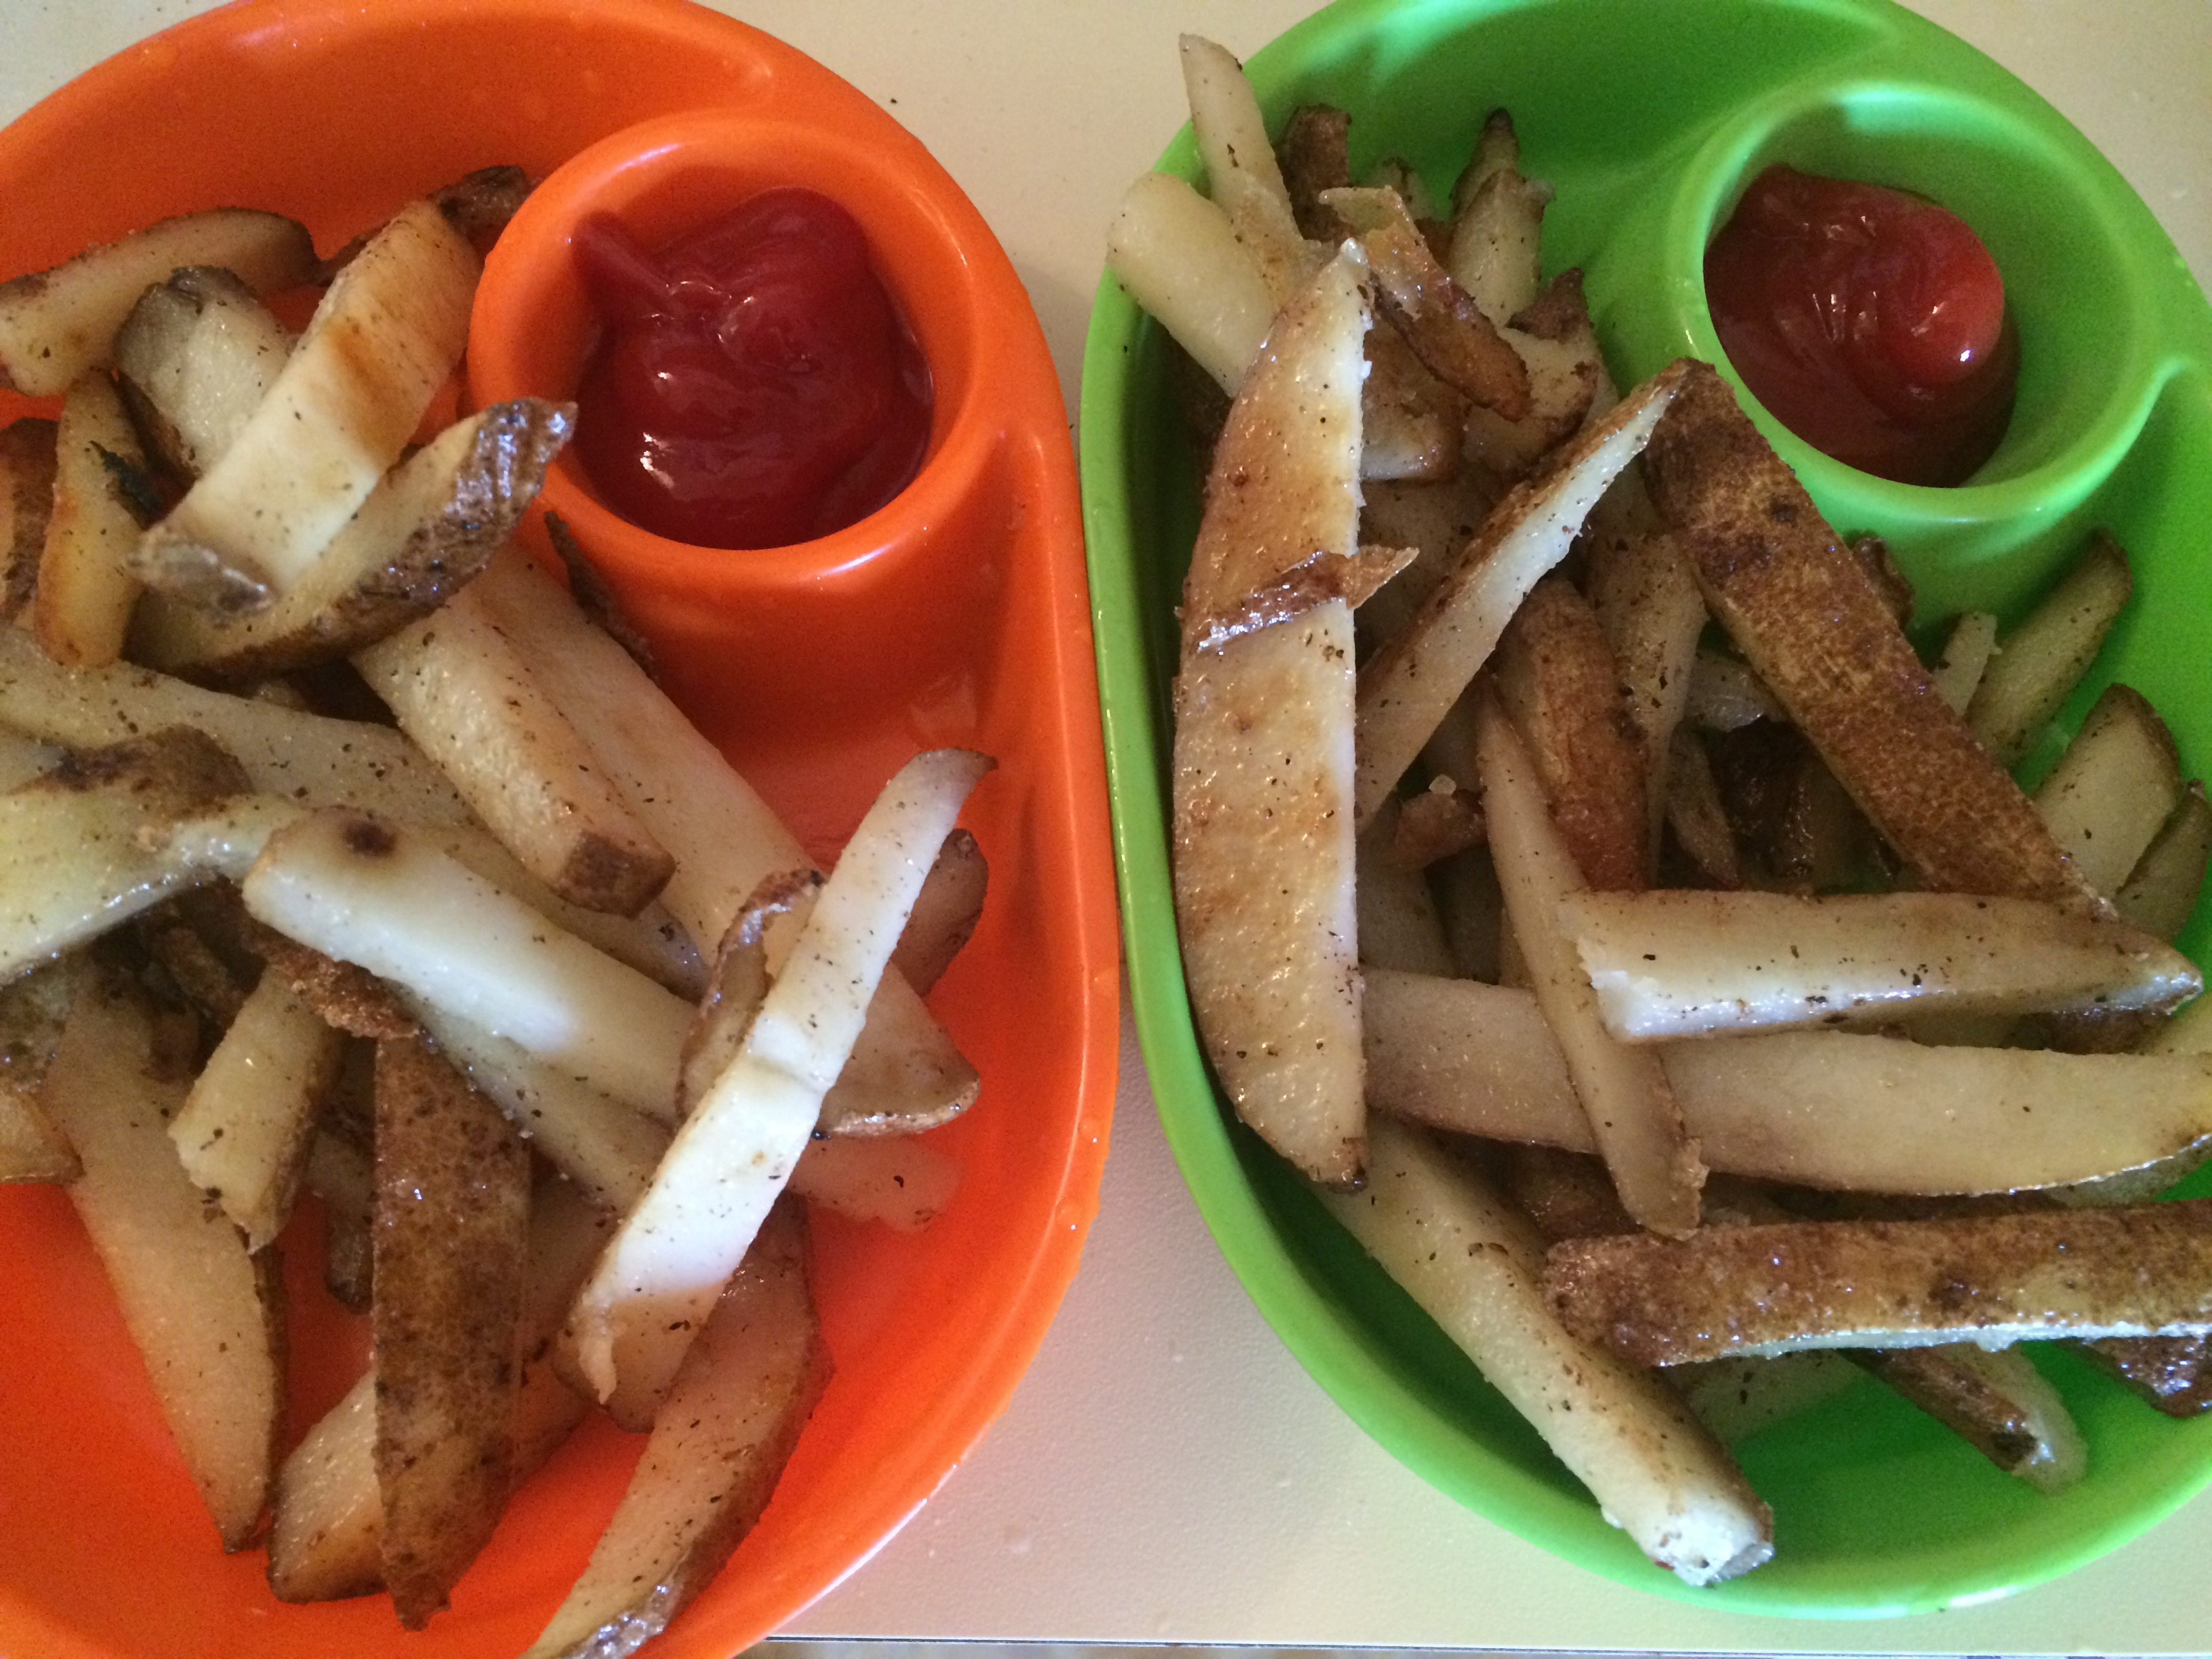 potato fries with ketchup